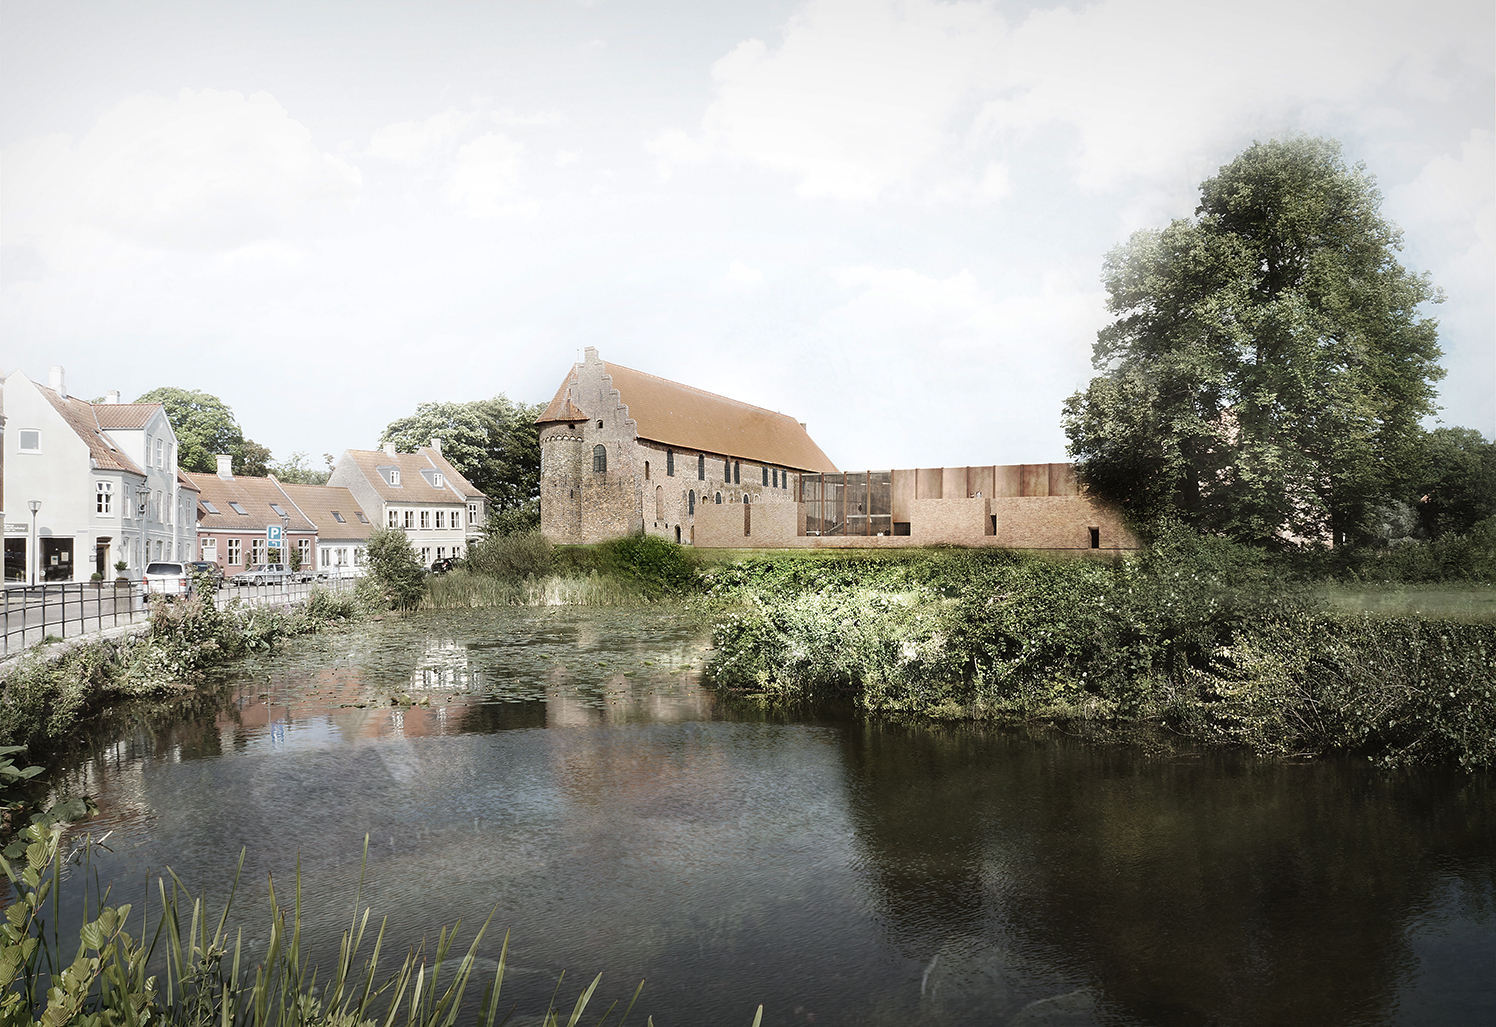 Cubo + jaja Win Competition to Restore the Nyborg Castle in Denmark | ArchDaily